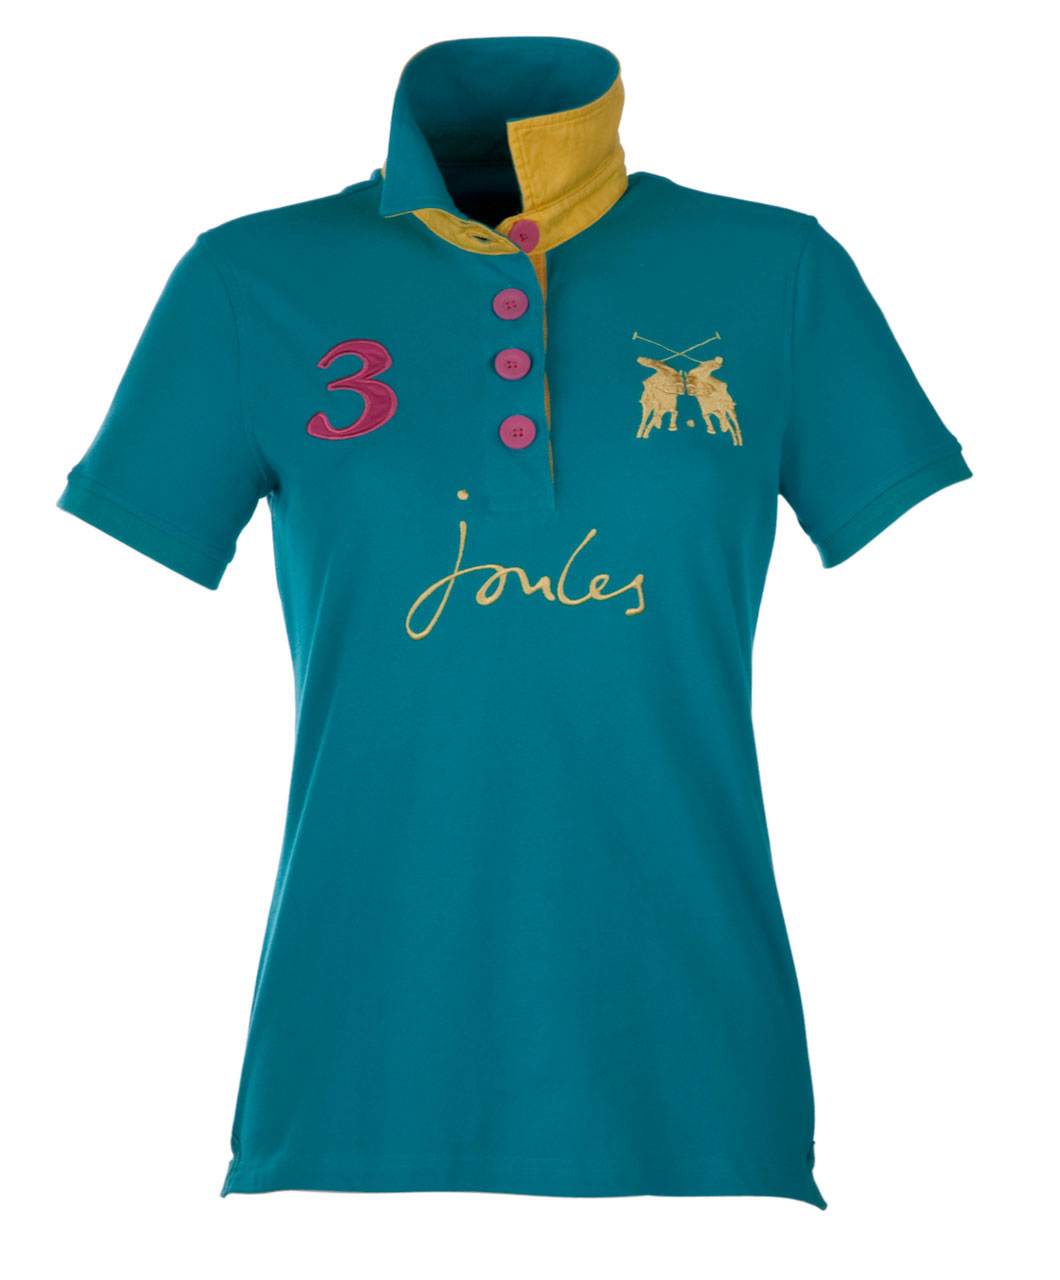 joules, ポロシャツ, 半袖